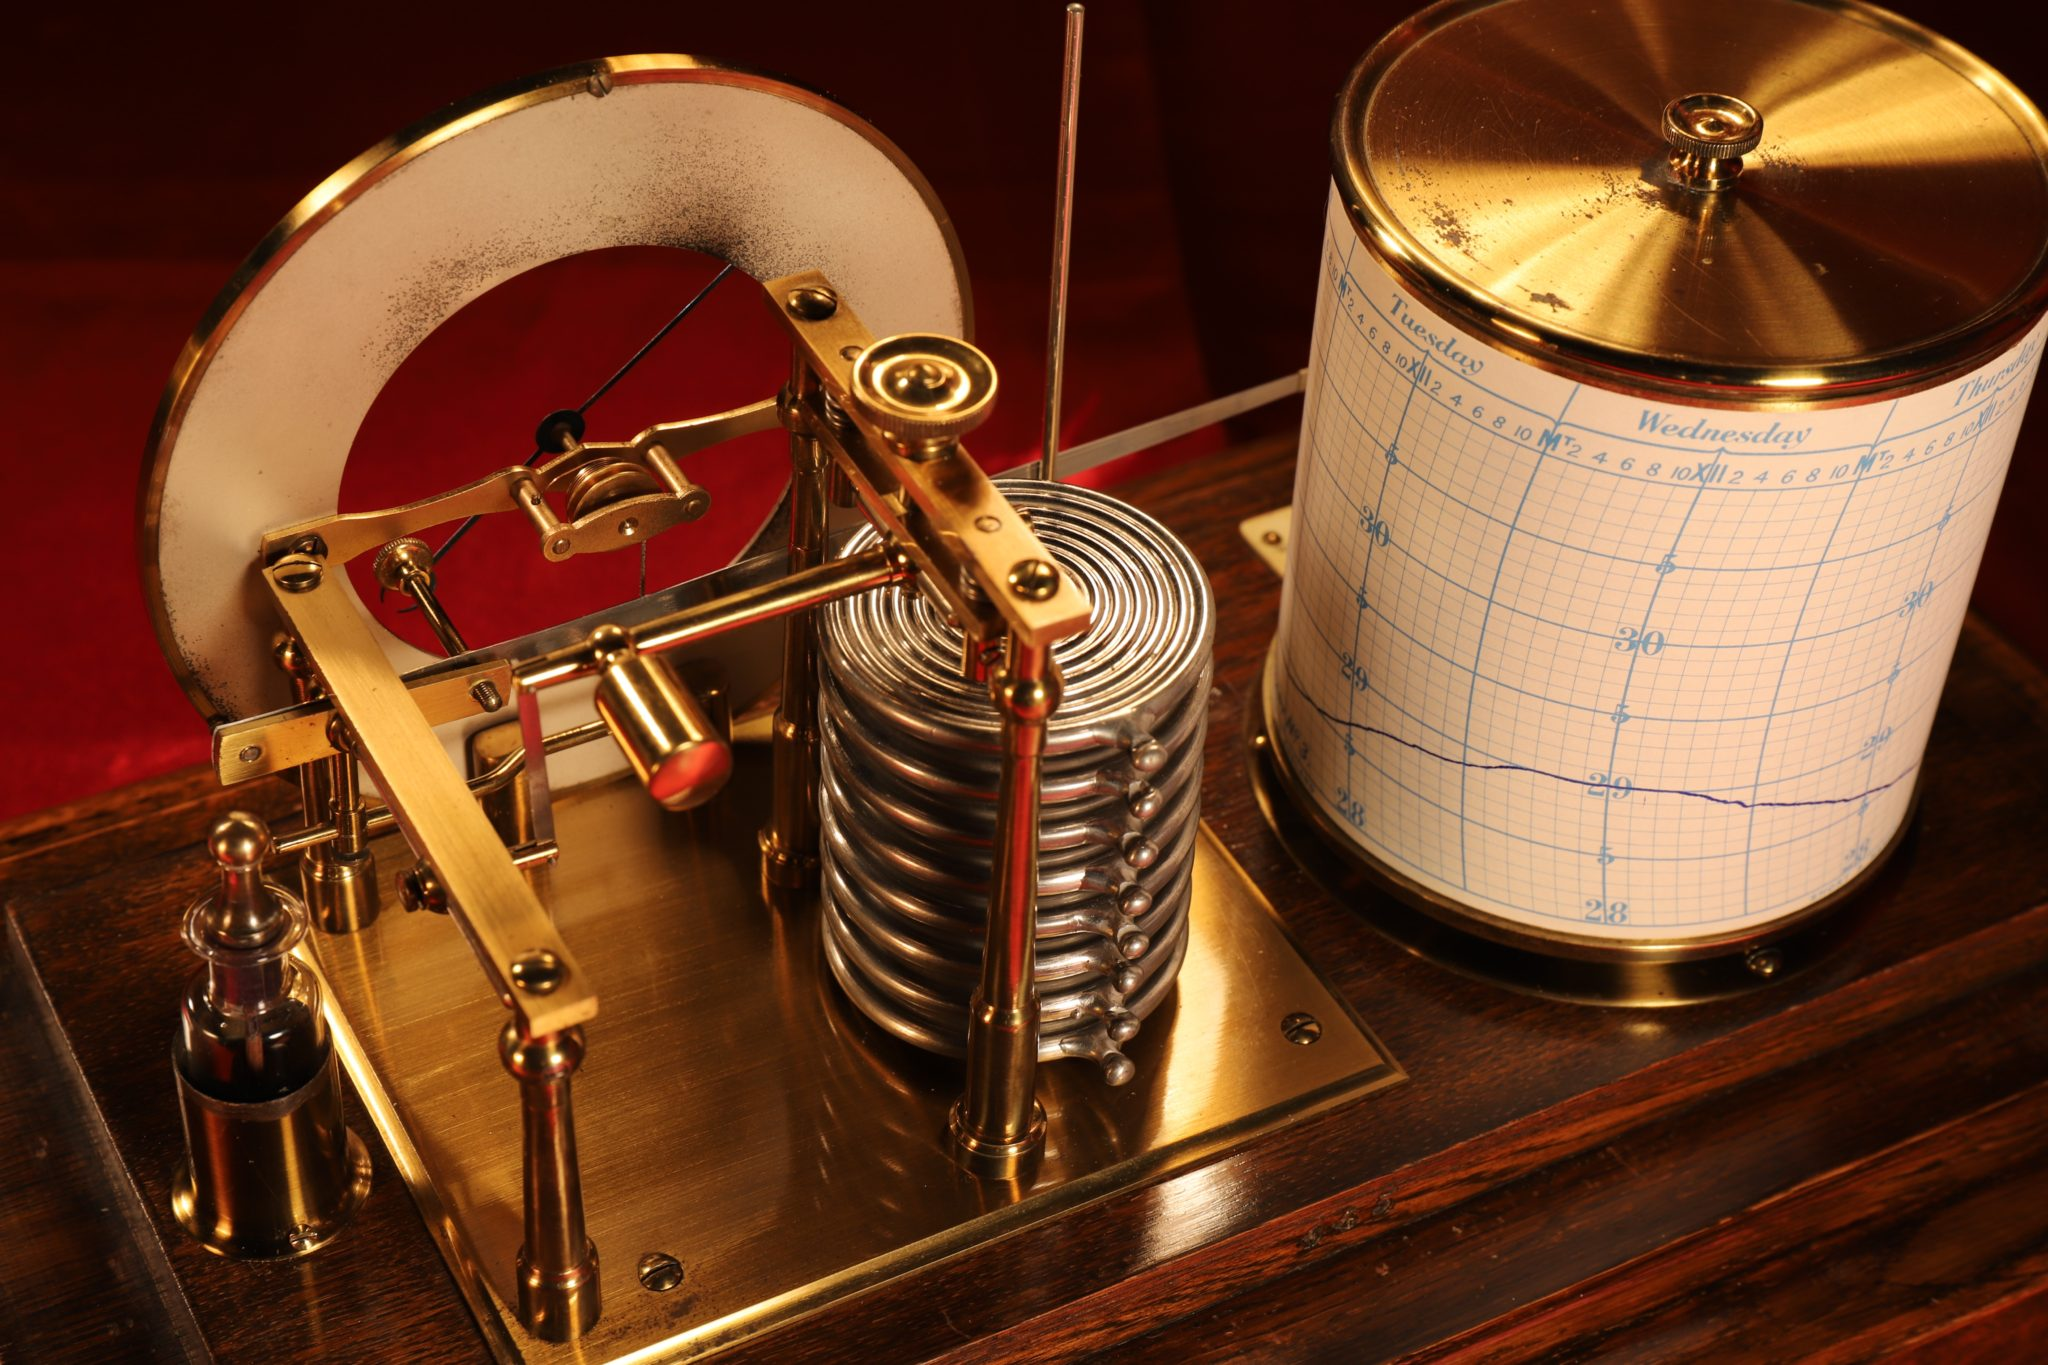 Image of Short & Mason Barograph & Barometer No 9582 Retailed by Thomas Skinner